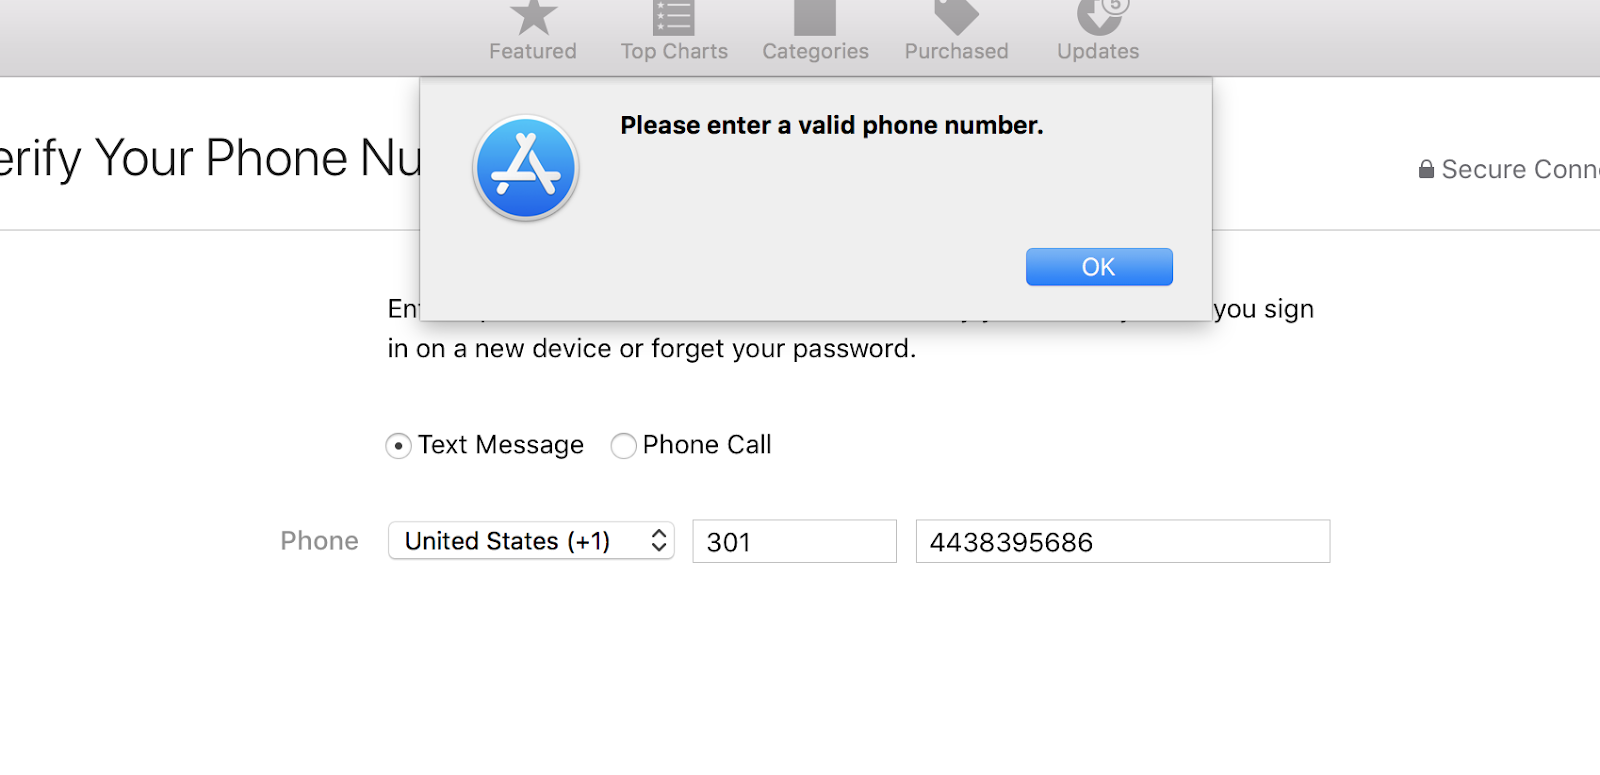 When I try to create a new Apple ID, why my phone number is